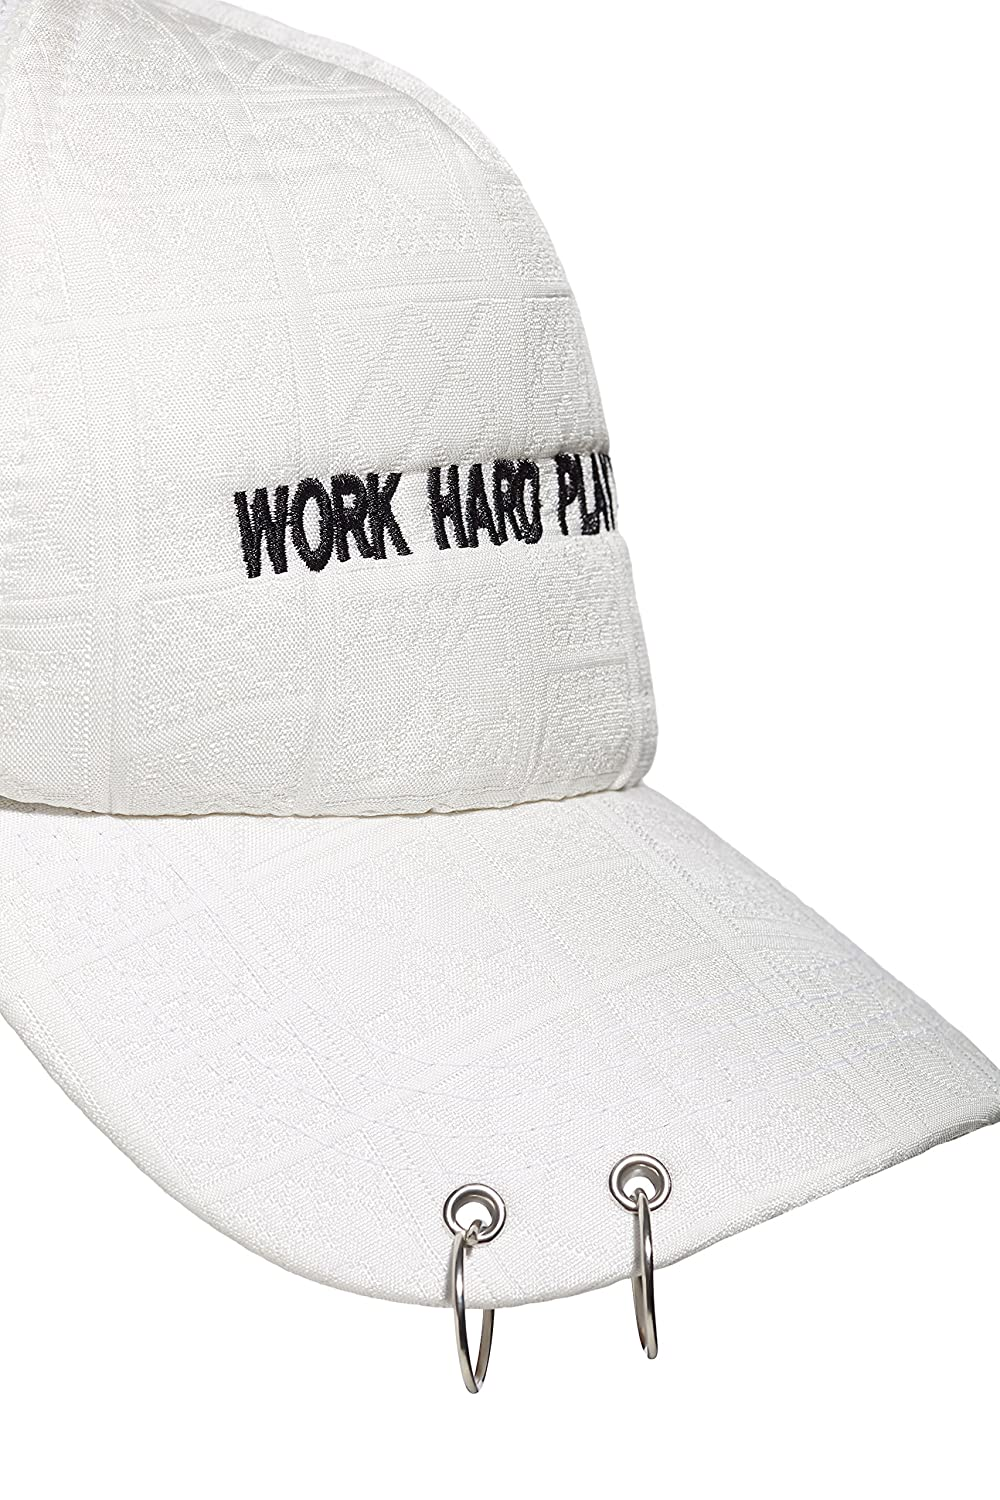 Work Hard Play Hard  Embroidered Baseball Cap 2 Rings Mesh Back Snapback  For Men (White)  Amazon.in  Clothing   Accessories 89592656bf7b